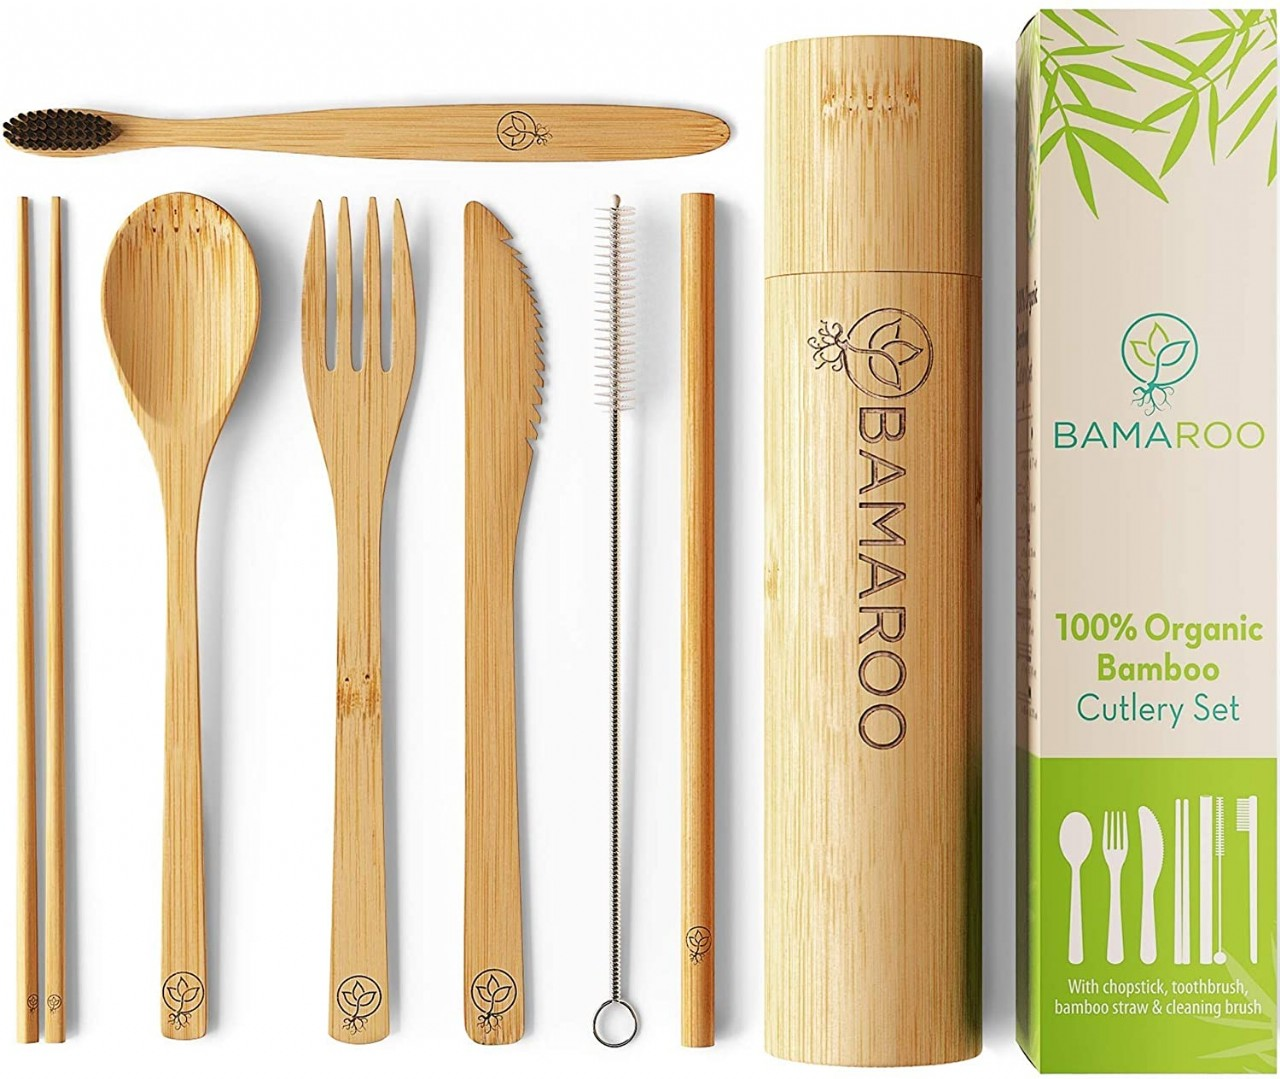 BAMAROO Bamboo Utensils Cutlery Set - Reusable Cutlery Travel Set With Case - Eco-Friendly Wooden